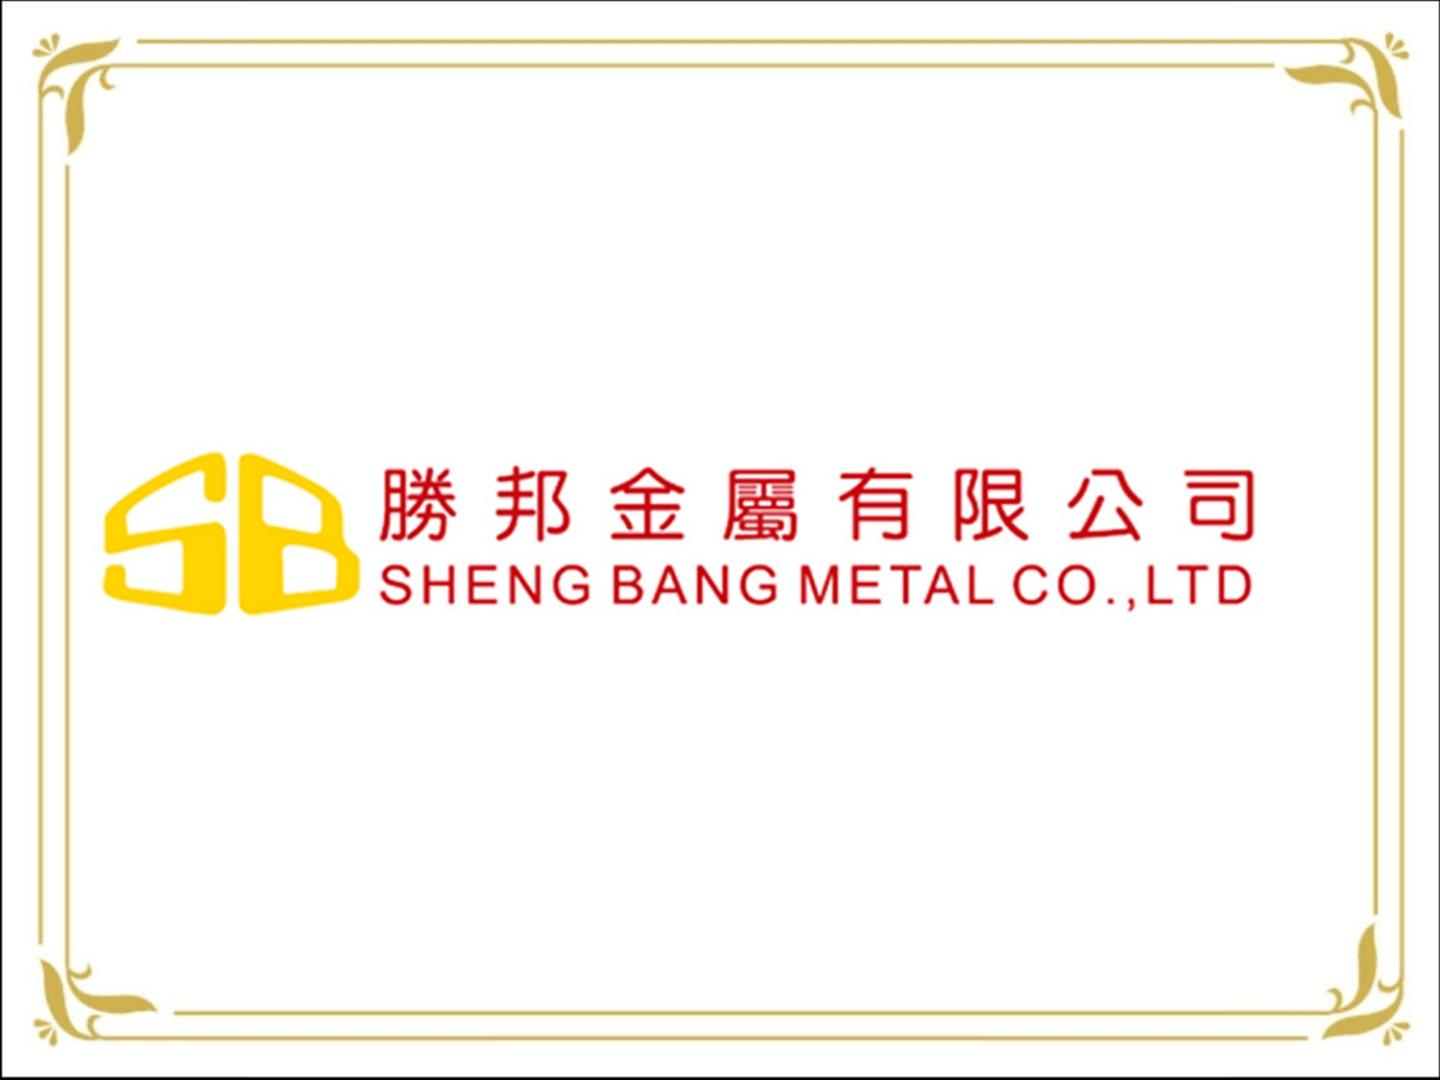 SHENG BANG METAL CO.,LTD